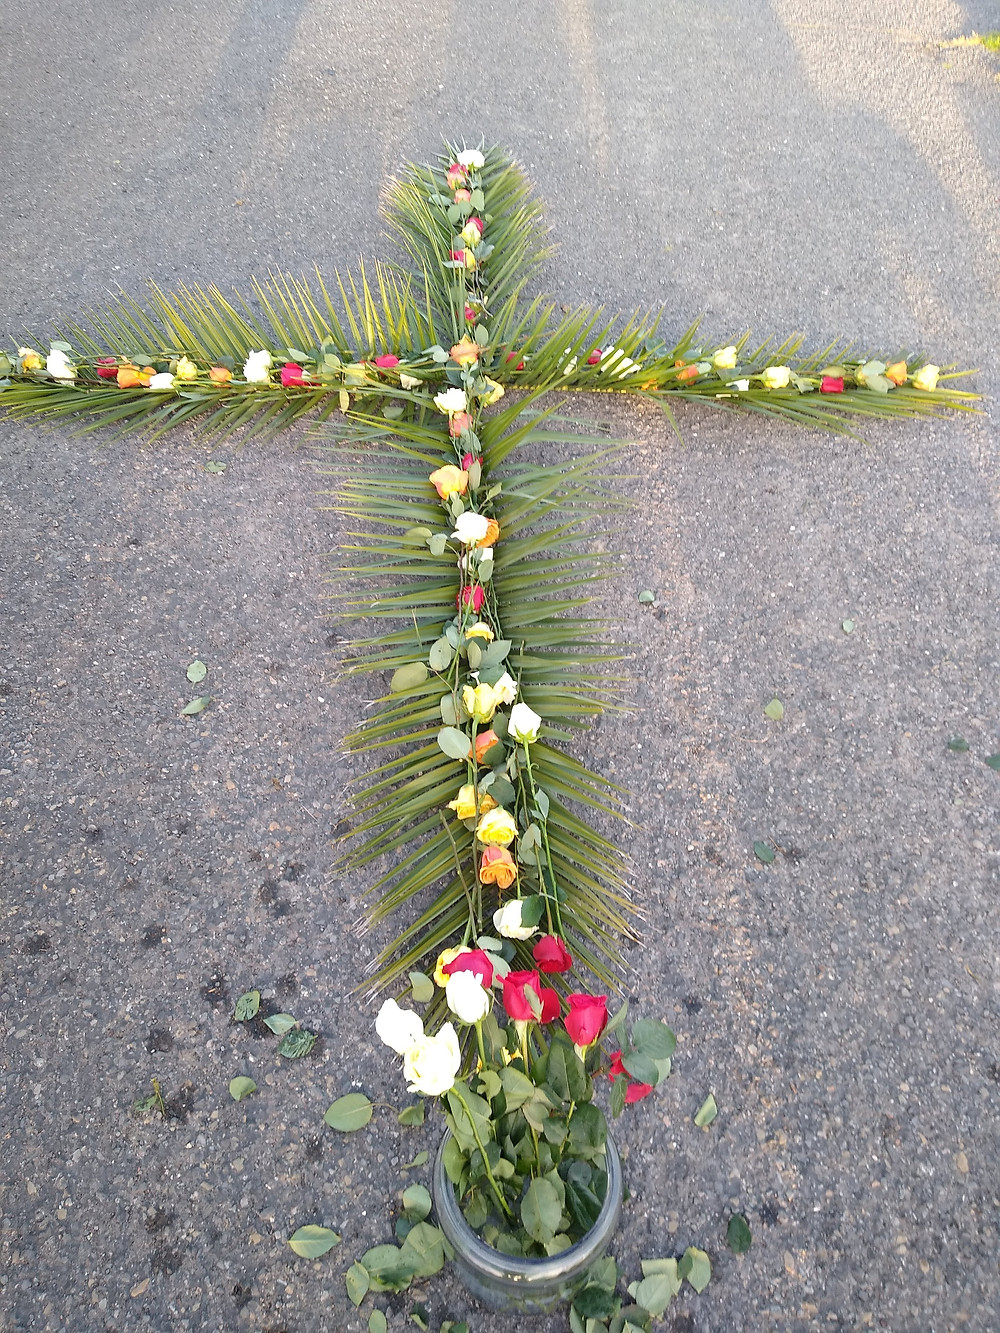 Easter Sunrise Cross formed by palm branches and roses